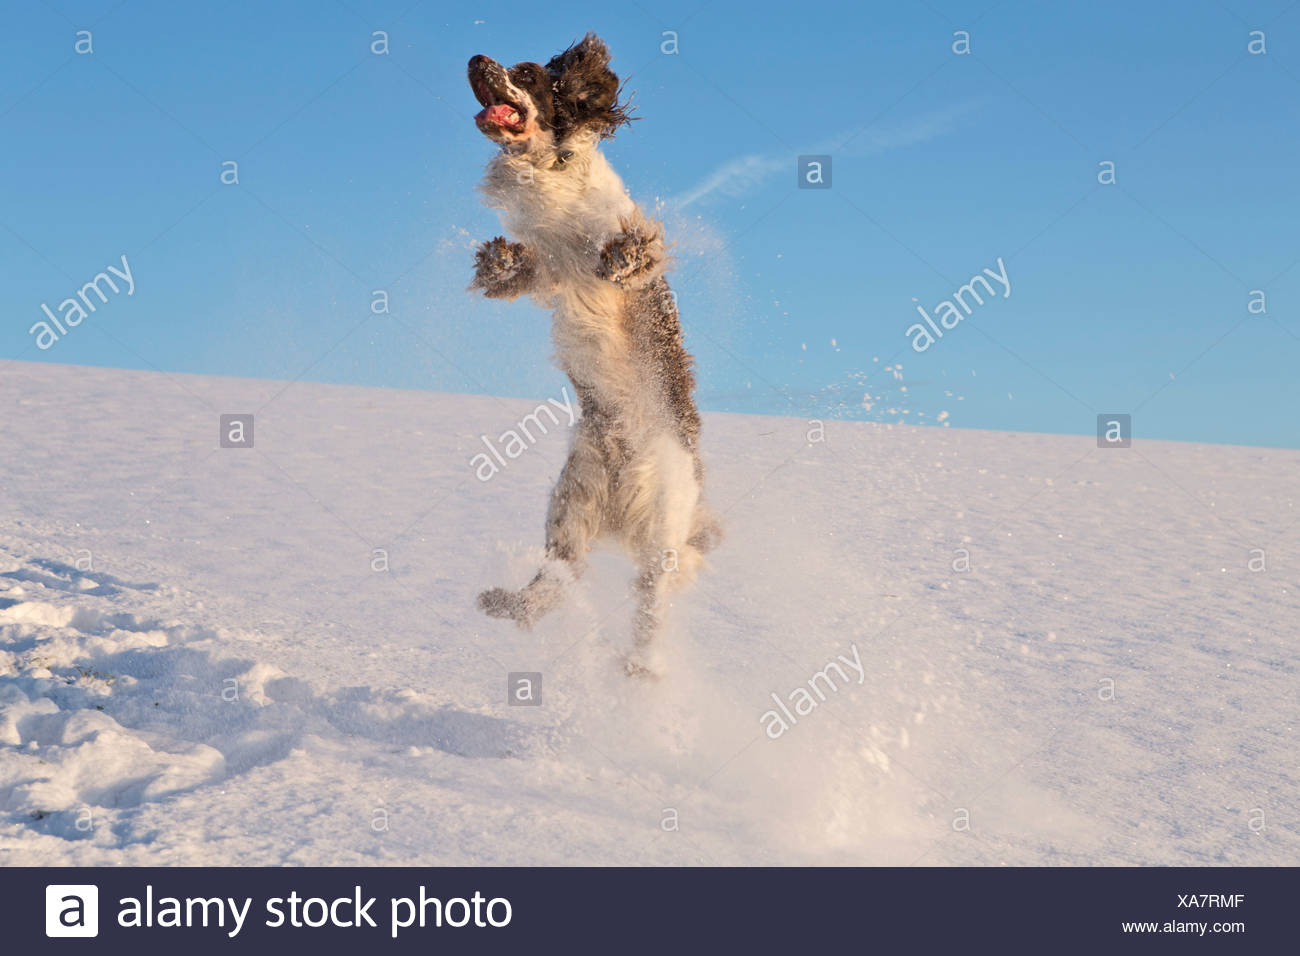 English Open Stock Photos & English Open Stock Images - Page 2 - Alamy